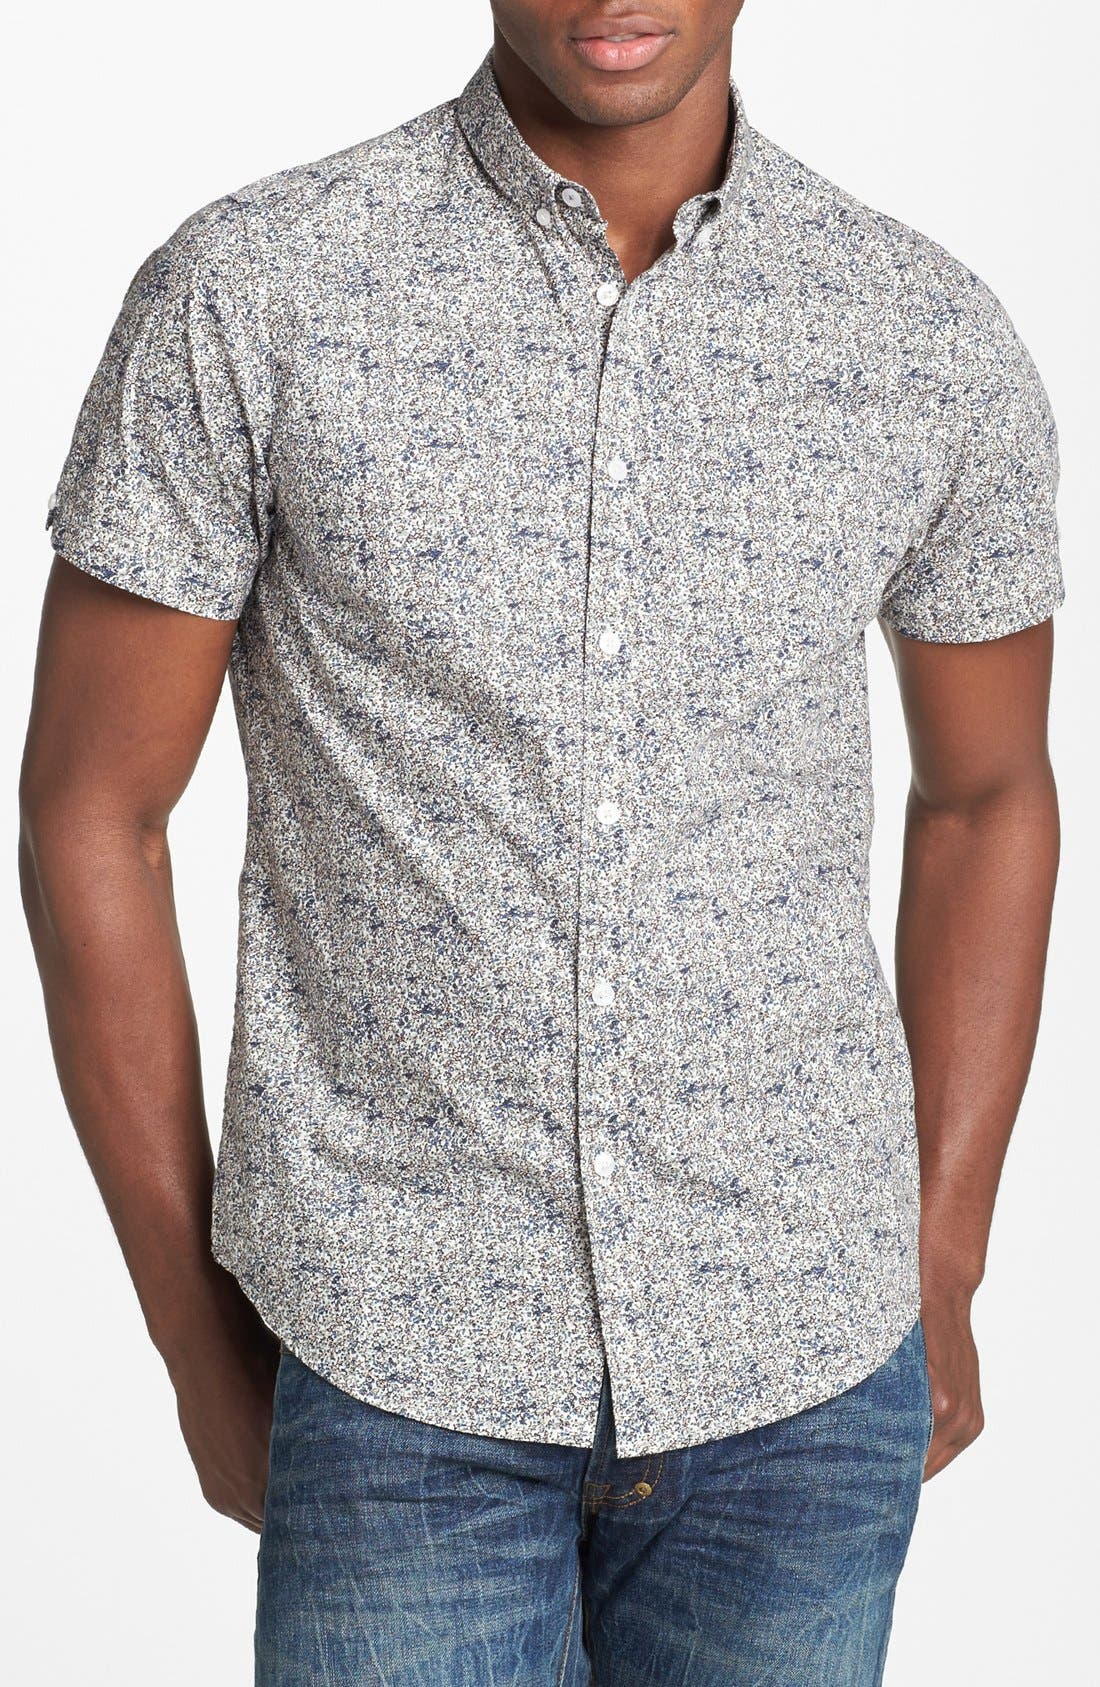 Alternate Image 1 Selected - Ben Sherman Floral Print Short Sleeve Woven Shirt